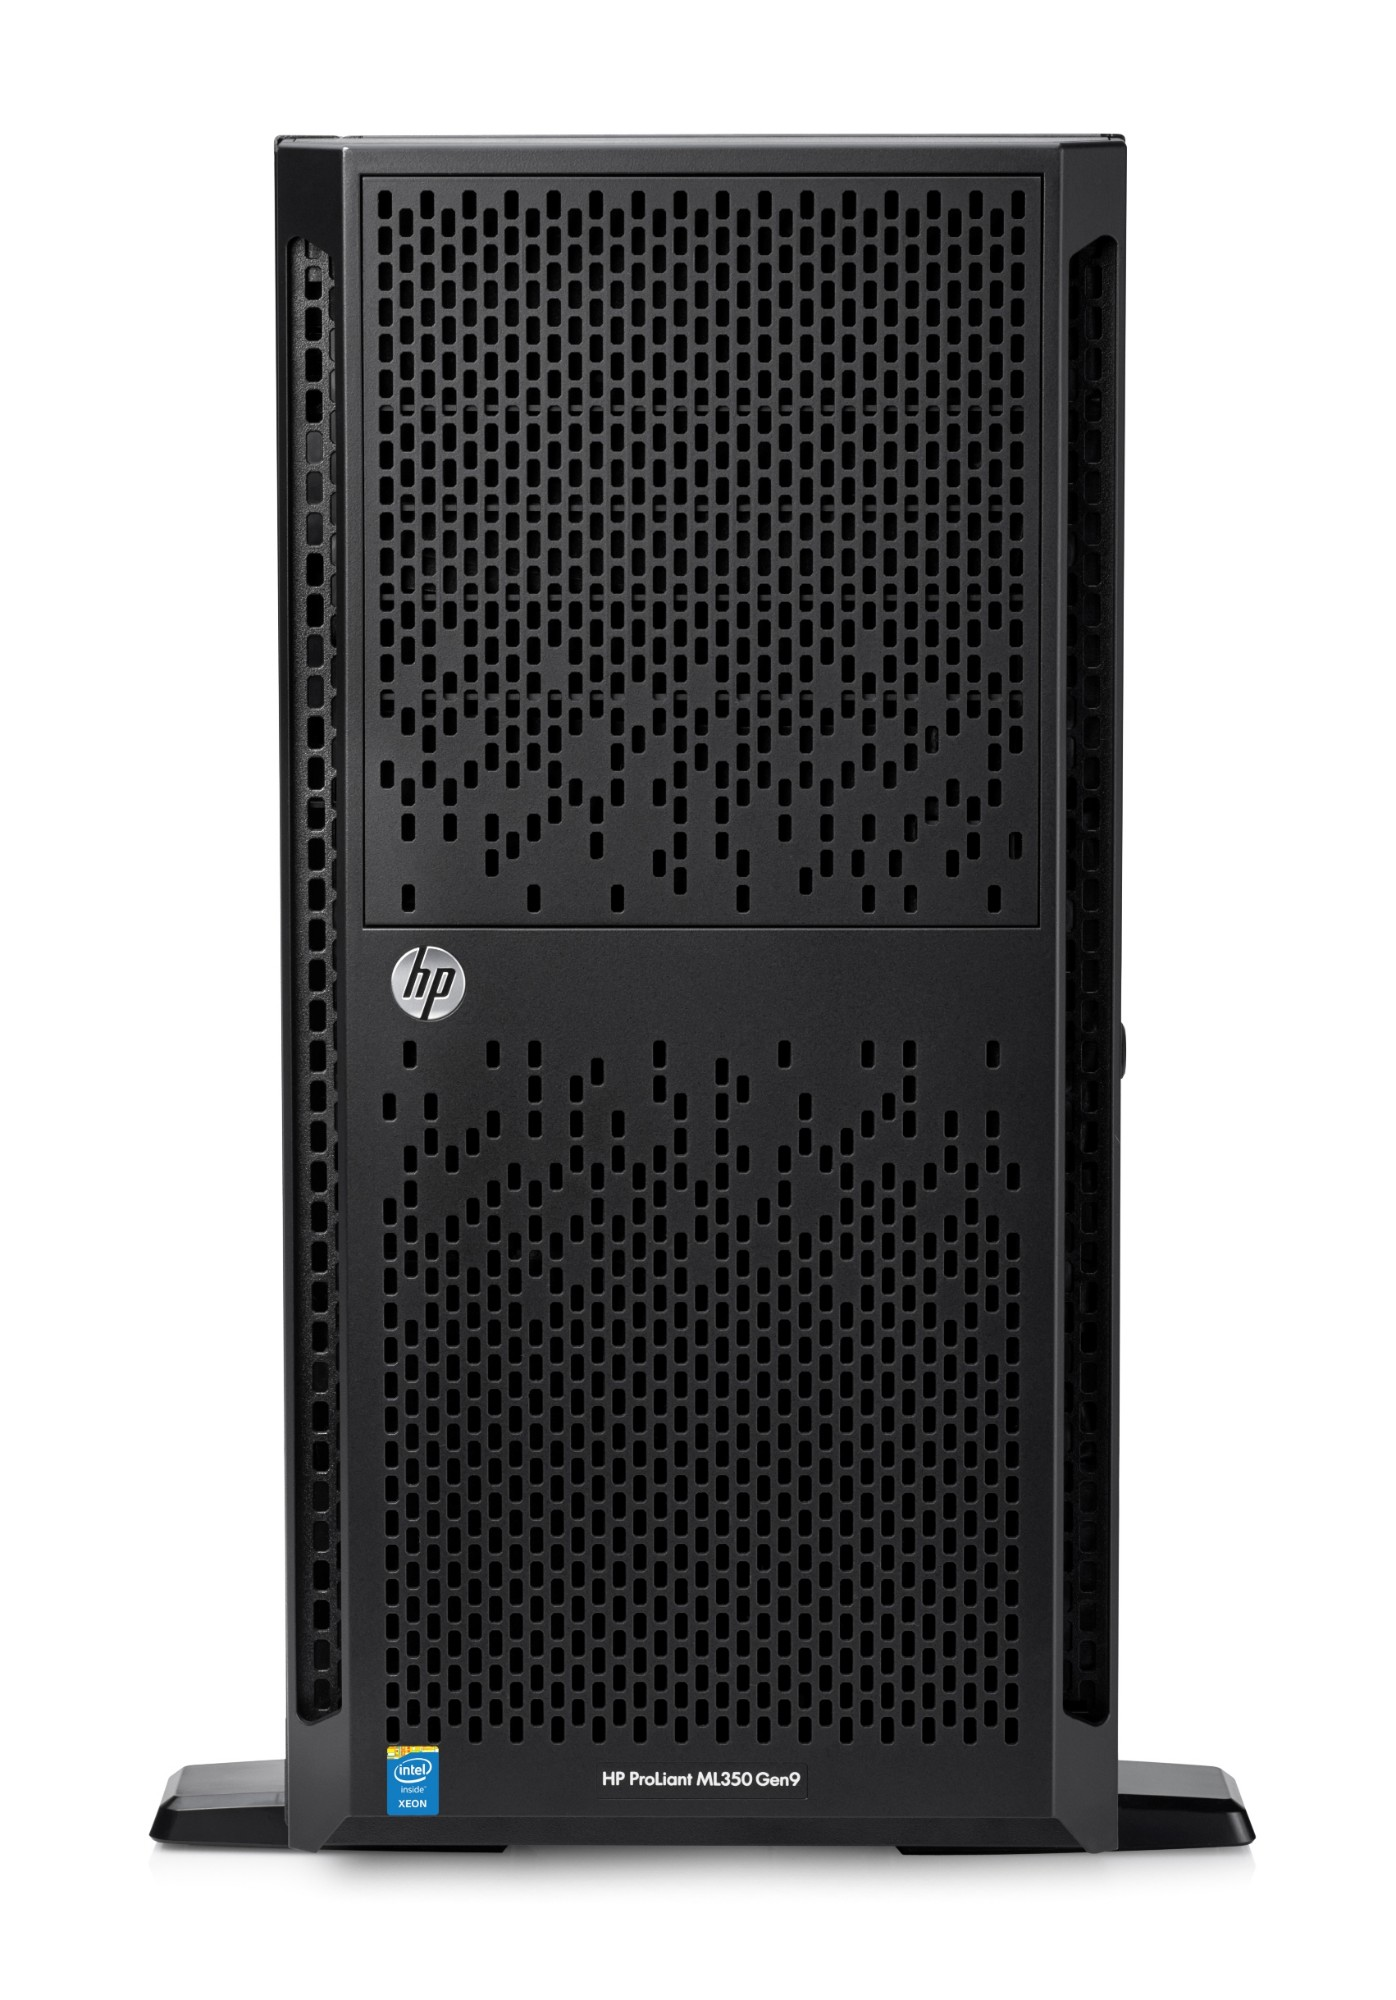 ProLiant ML350 Gen9 2p Xe E5-2650v4 / 32GB-R P440ar 8SFF 2x800W PS Uk